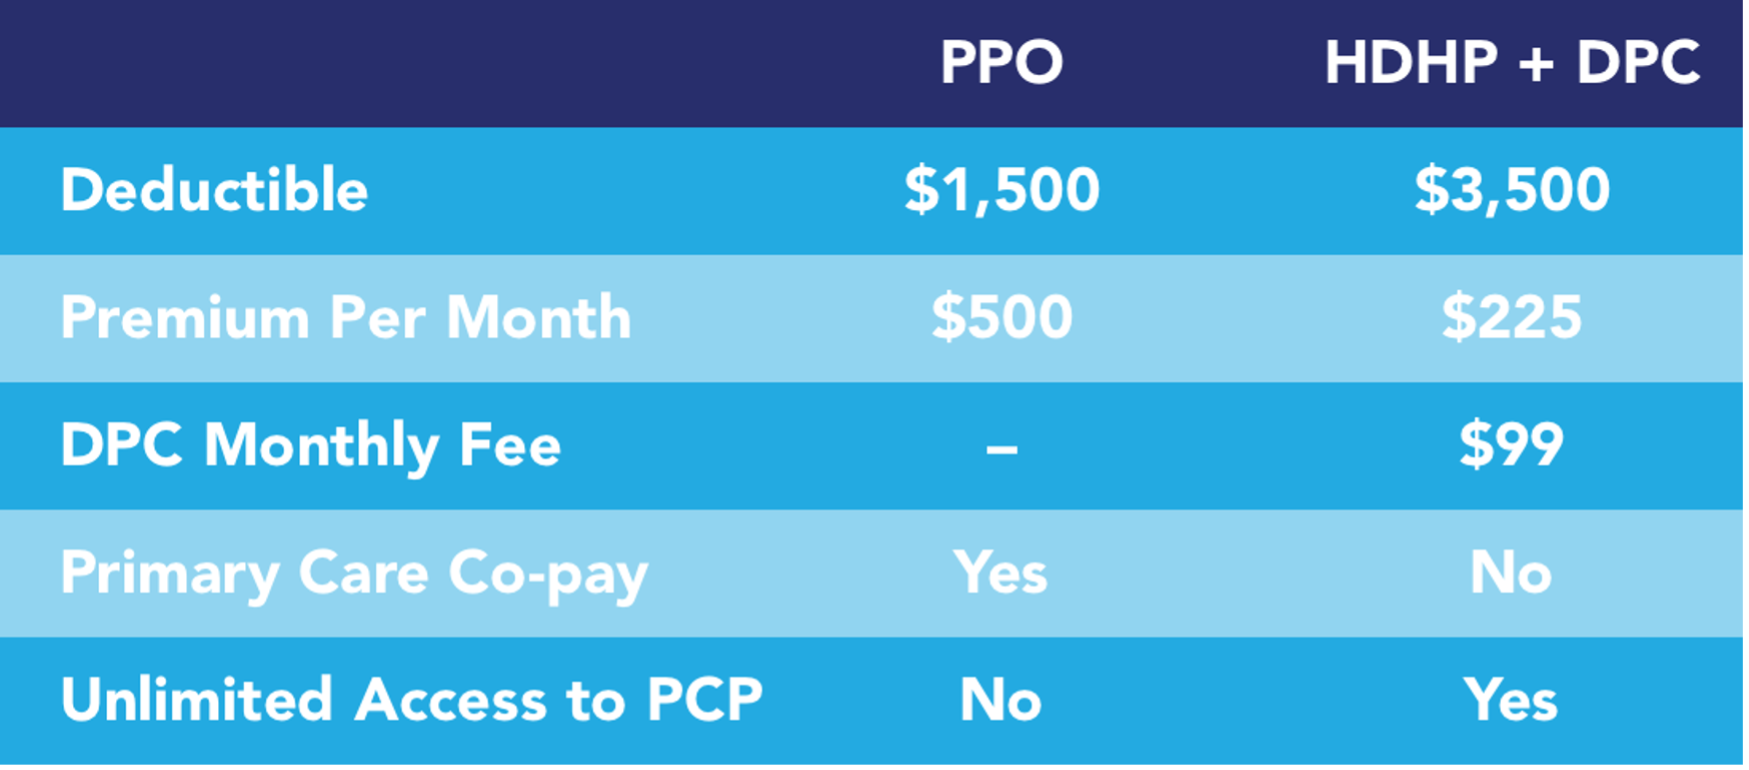 This chart shows how Preferred Provider Organization insurance policies differ from High Deductible Health Plans paired with Direct Primary Care. For the former, deductibles are lower and premiums are higher. Patients must pay a co-pay for visits and don't get unlimited access to their provider.